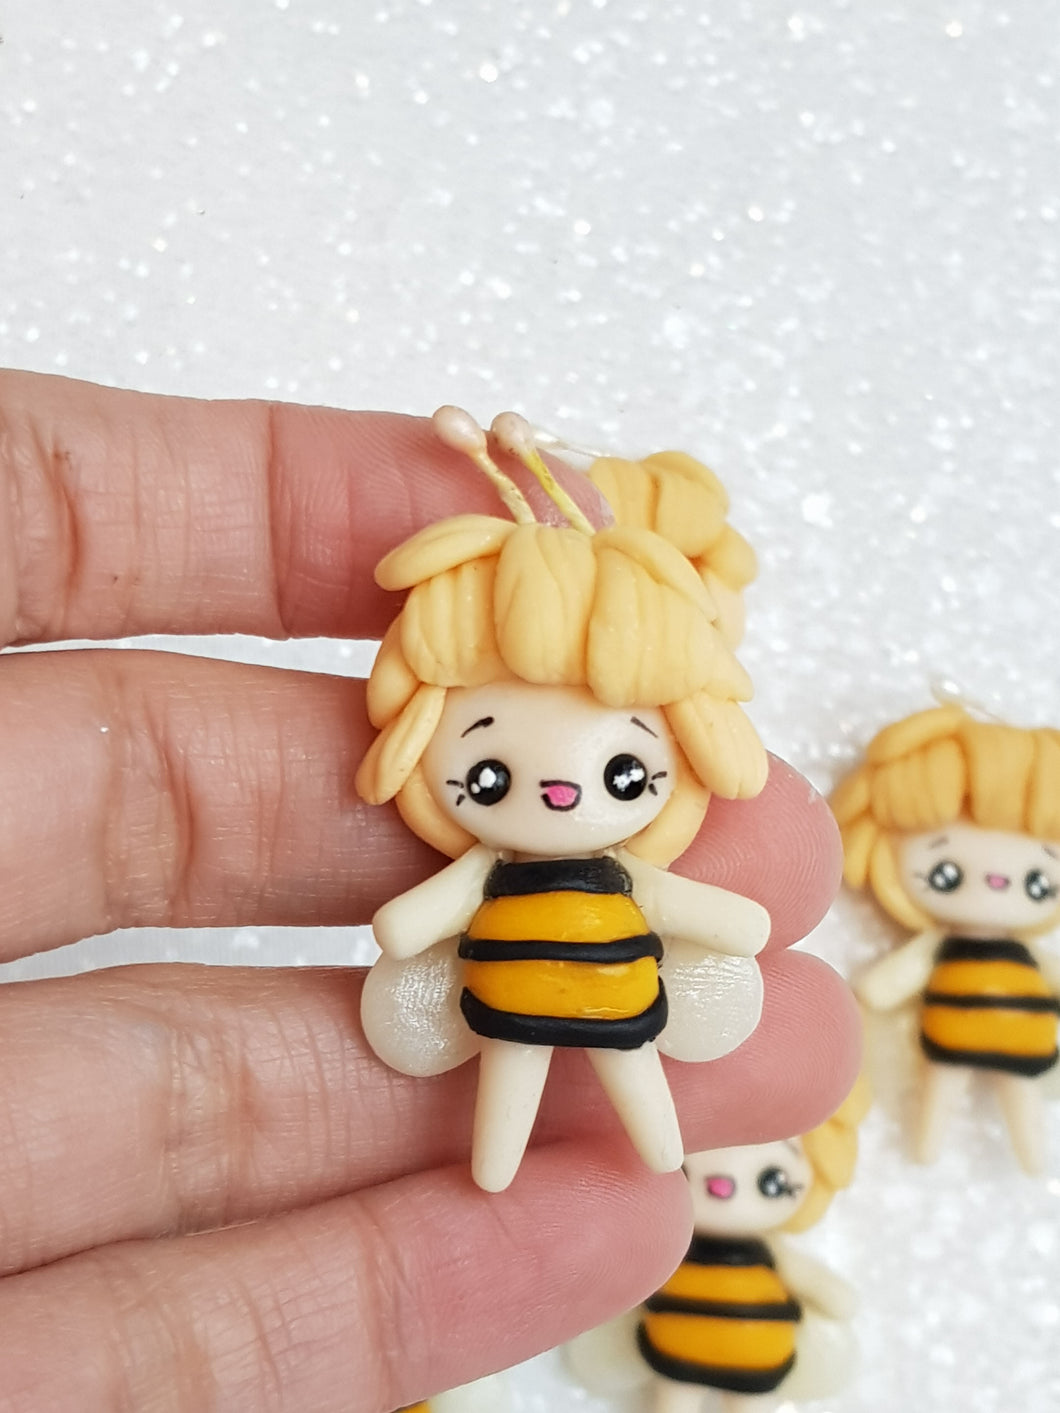 Clay Charm Embellishment - Bee Girl - Crafty Mood